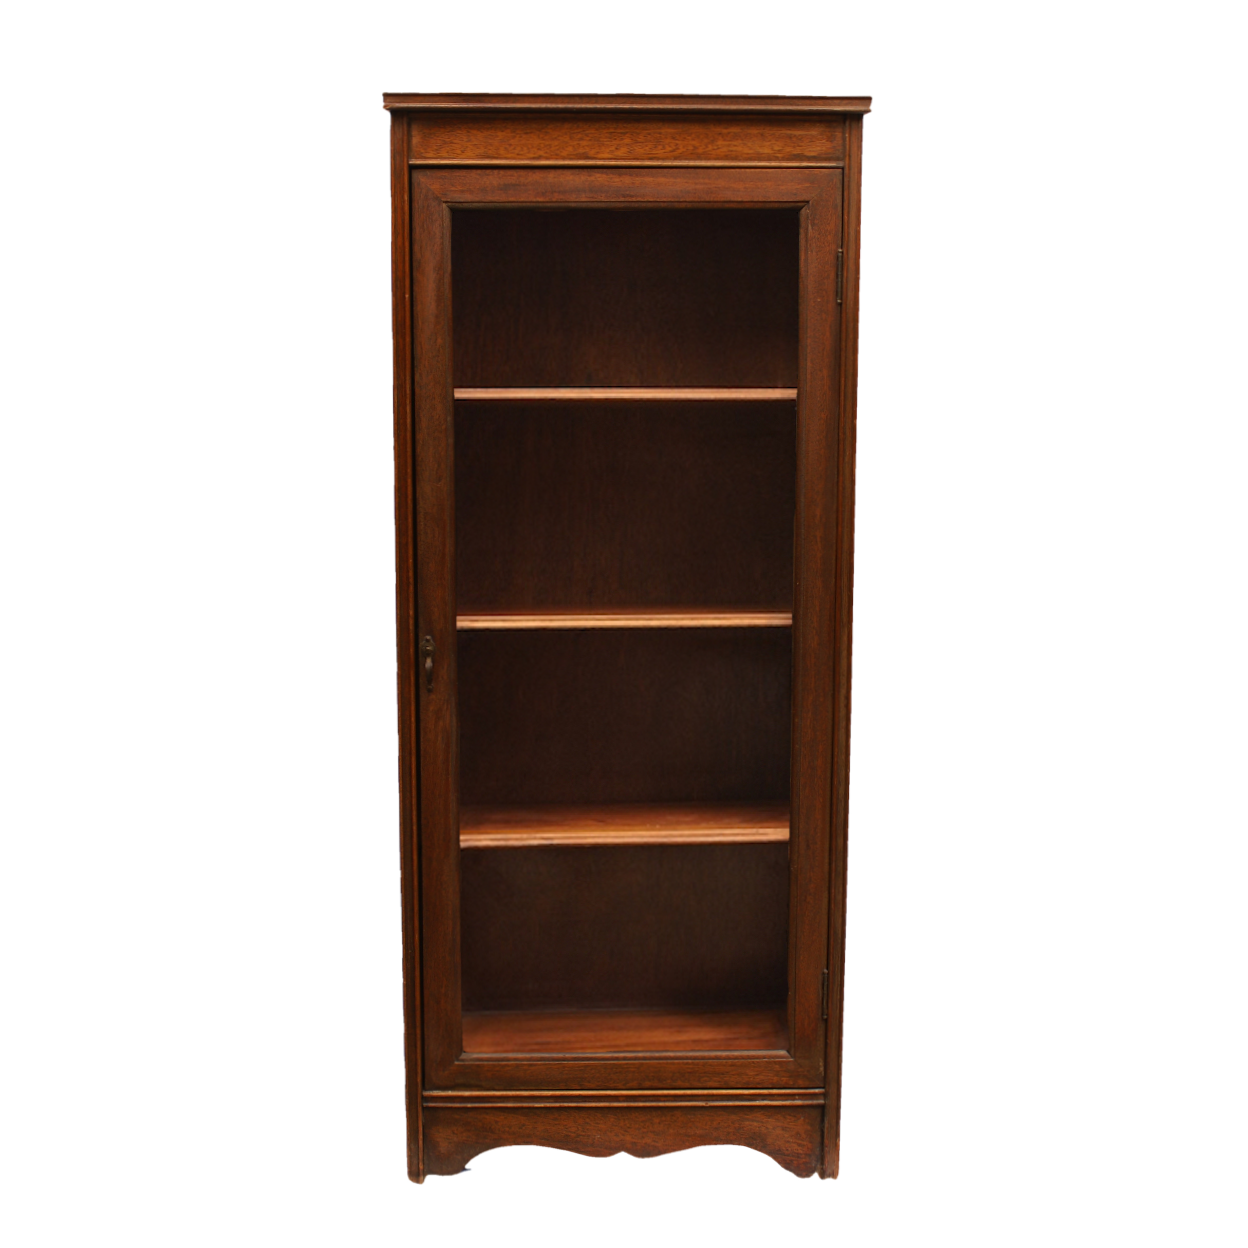 Very Impressive portraiture of Glass Door Bookcase Chairish with #AD5315 color and 1248x1248 pixels